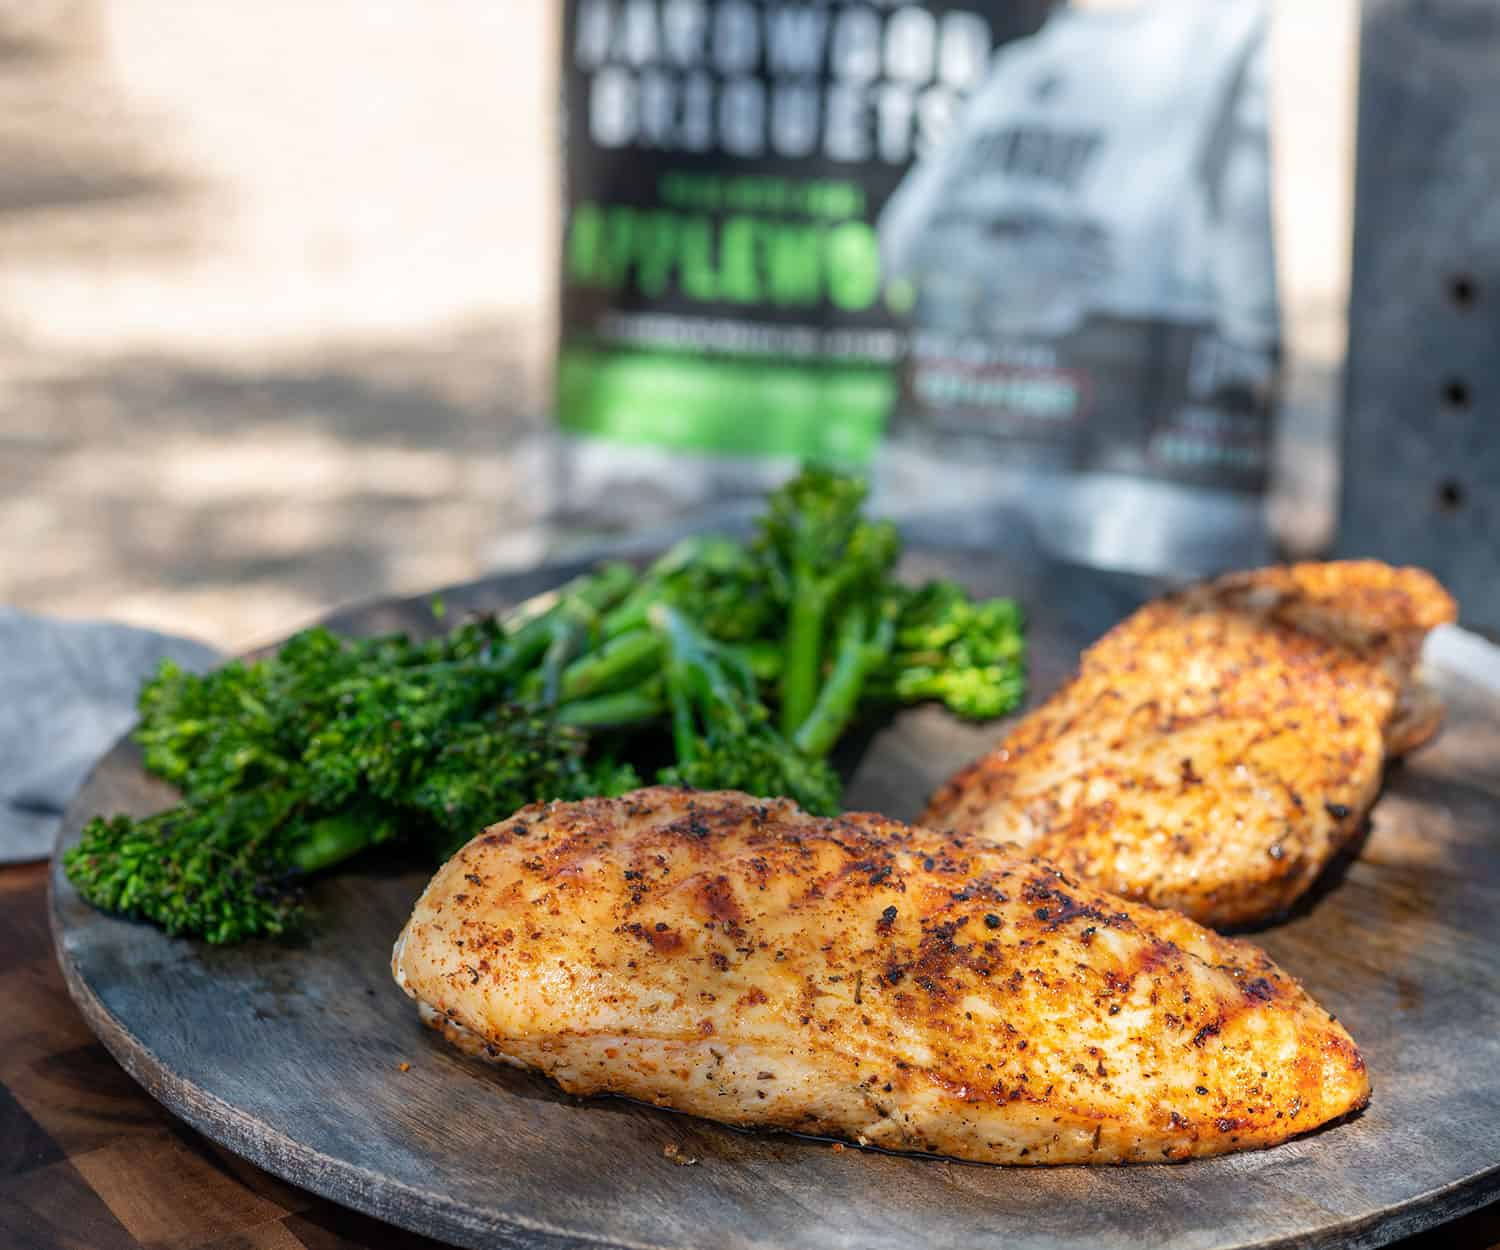 plate of two chicken breasts and broccoli by bag of Cowboy Charcoal